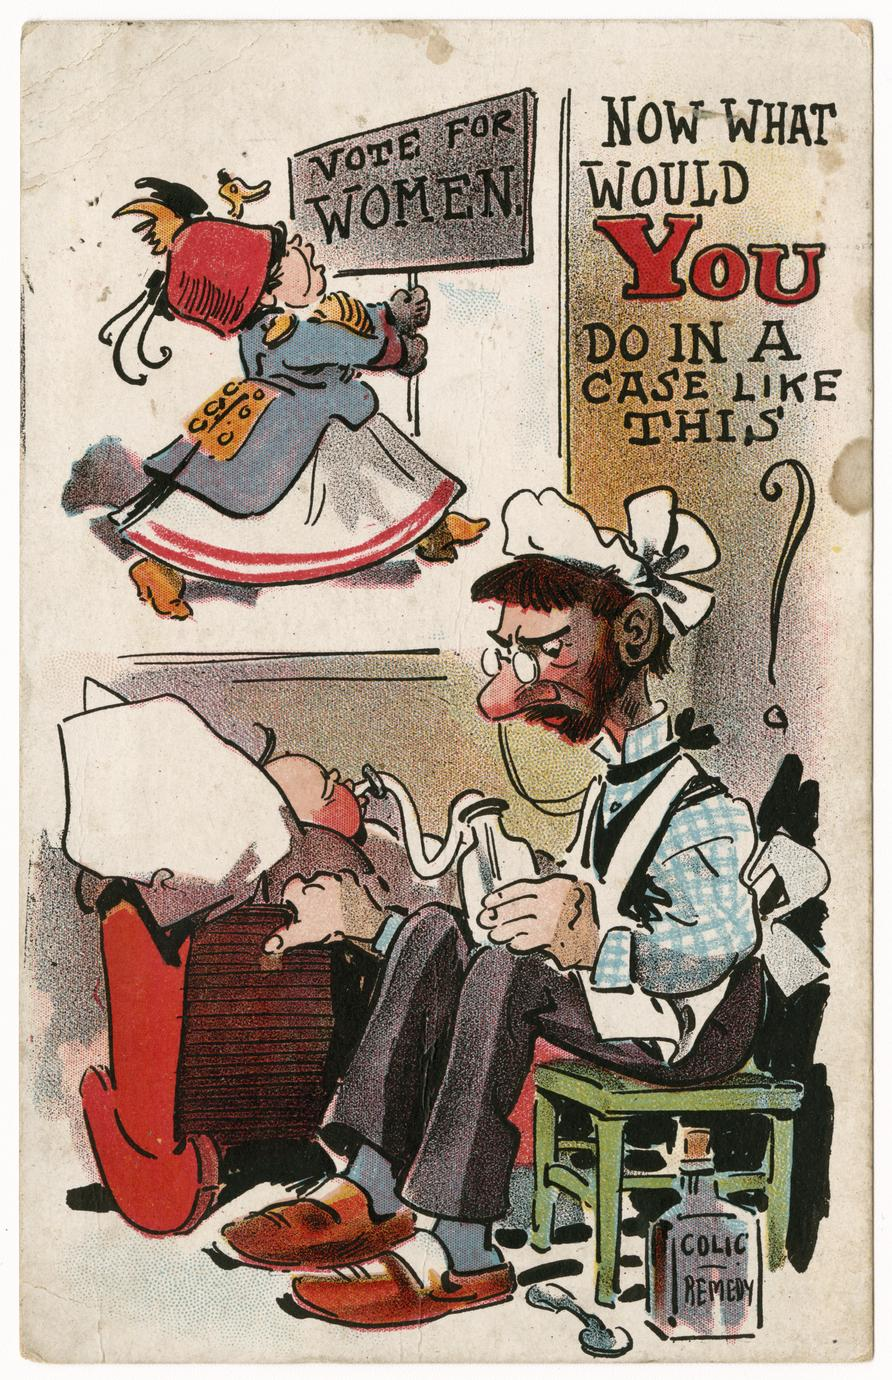 What would you do in a case like this, suffrage postcard